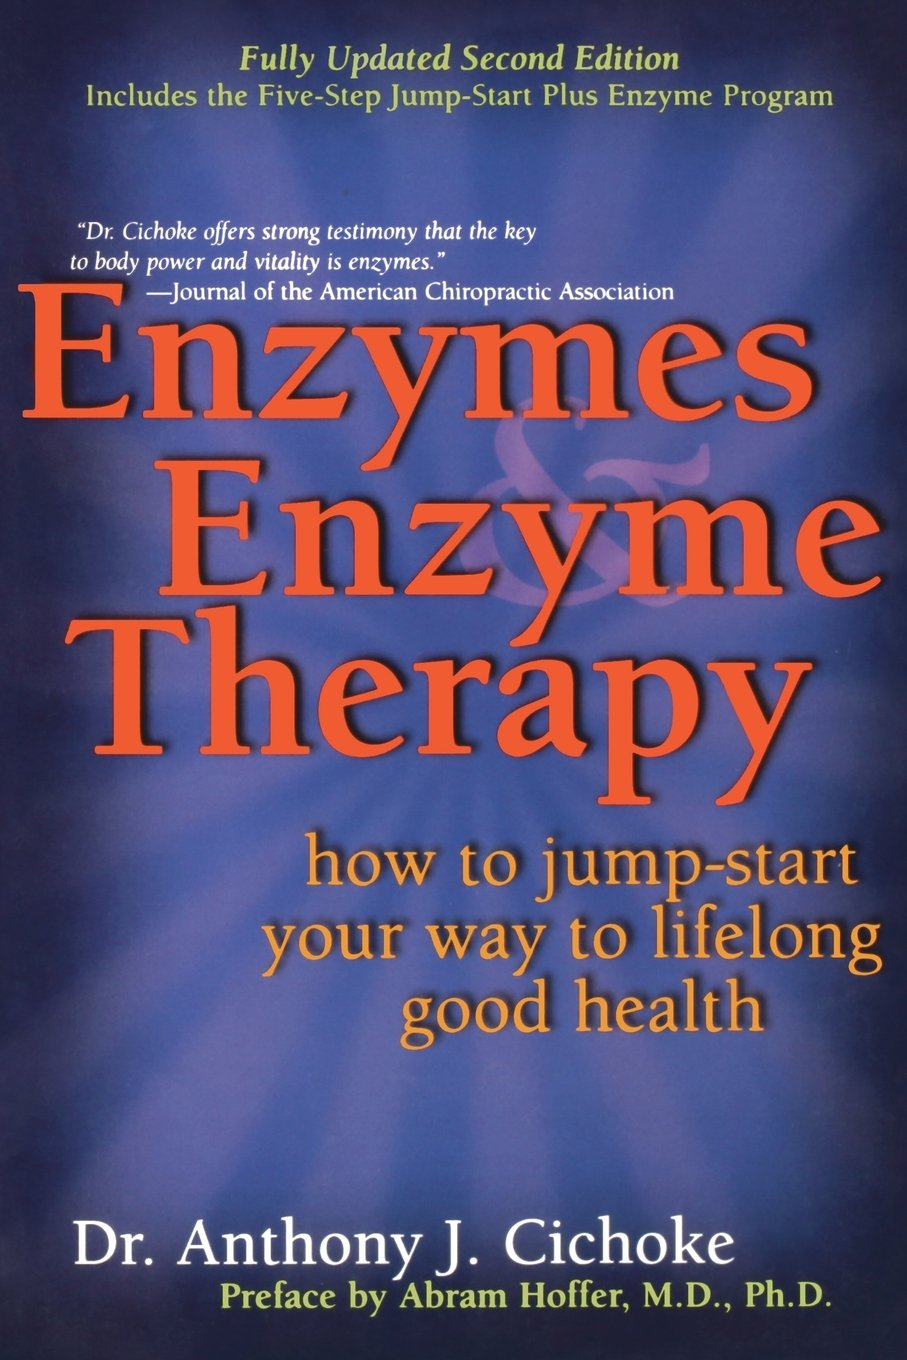 "Enzymes and Enzyme Therapy - by Dr. Anthony J. CichokeEnzymes–living substances that regulate health–work with certain minerals in our bodies to form an antioxidant system that fights corrosive free radicals. This fully updated second edition explains how to make the most of this amazing natural partnership to speed recovery from injury and lessen the effects of back pain, multiple sclerosis, viruses, and fatigue. Dr. Cichoke shows how every life process depends on enzymes. He covers a broad range of subjects starting with digestion, elimination, co-enzymes, how to obtain more enzymes in your diet and through supplementation. He has a 5-step program of do's and don'ts, including avoidance of aluminum cookware, refined sugars and salt, coffee, and so on. He also tells you how and what to eat and how to prepare foods for the best utilization of enzymes. Dr. Cichoke addresses a large range of health problems from extending life to AIDS and cancer. He also covers medications that affect enzymes, including OTC drugs and prescription drugs, as well as foods that contain enzyme inhibitors. This is a great book! One I believe everyone should own. I also would strongly suggest Dr. Cichoke's book ""The Complete Book of Enzyme Therapy"". This book is set up very much like the ""Prescription for Natural Healing"", however it addresses health from an enzyme point of view."